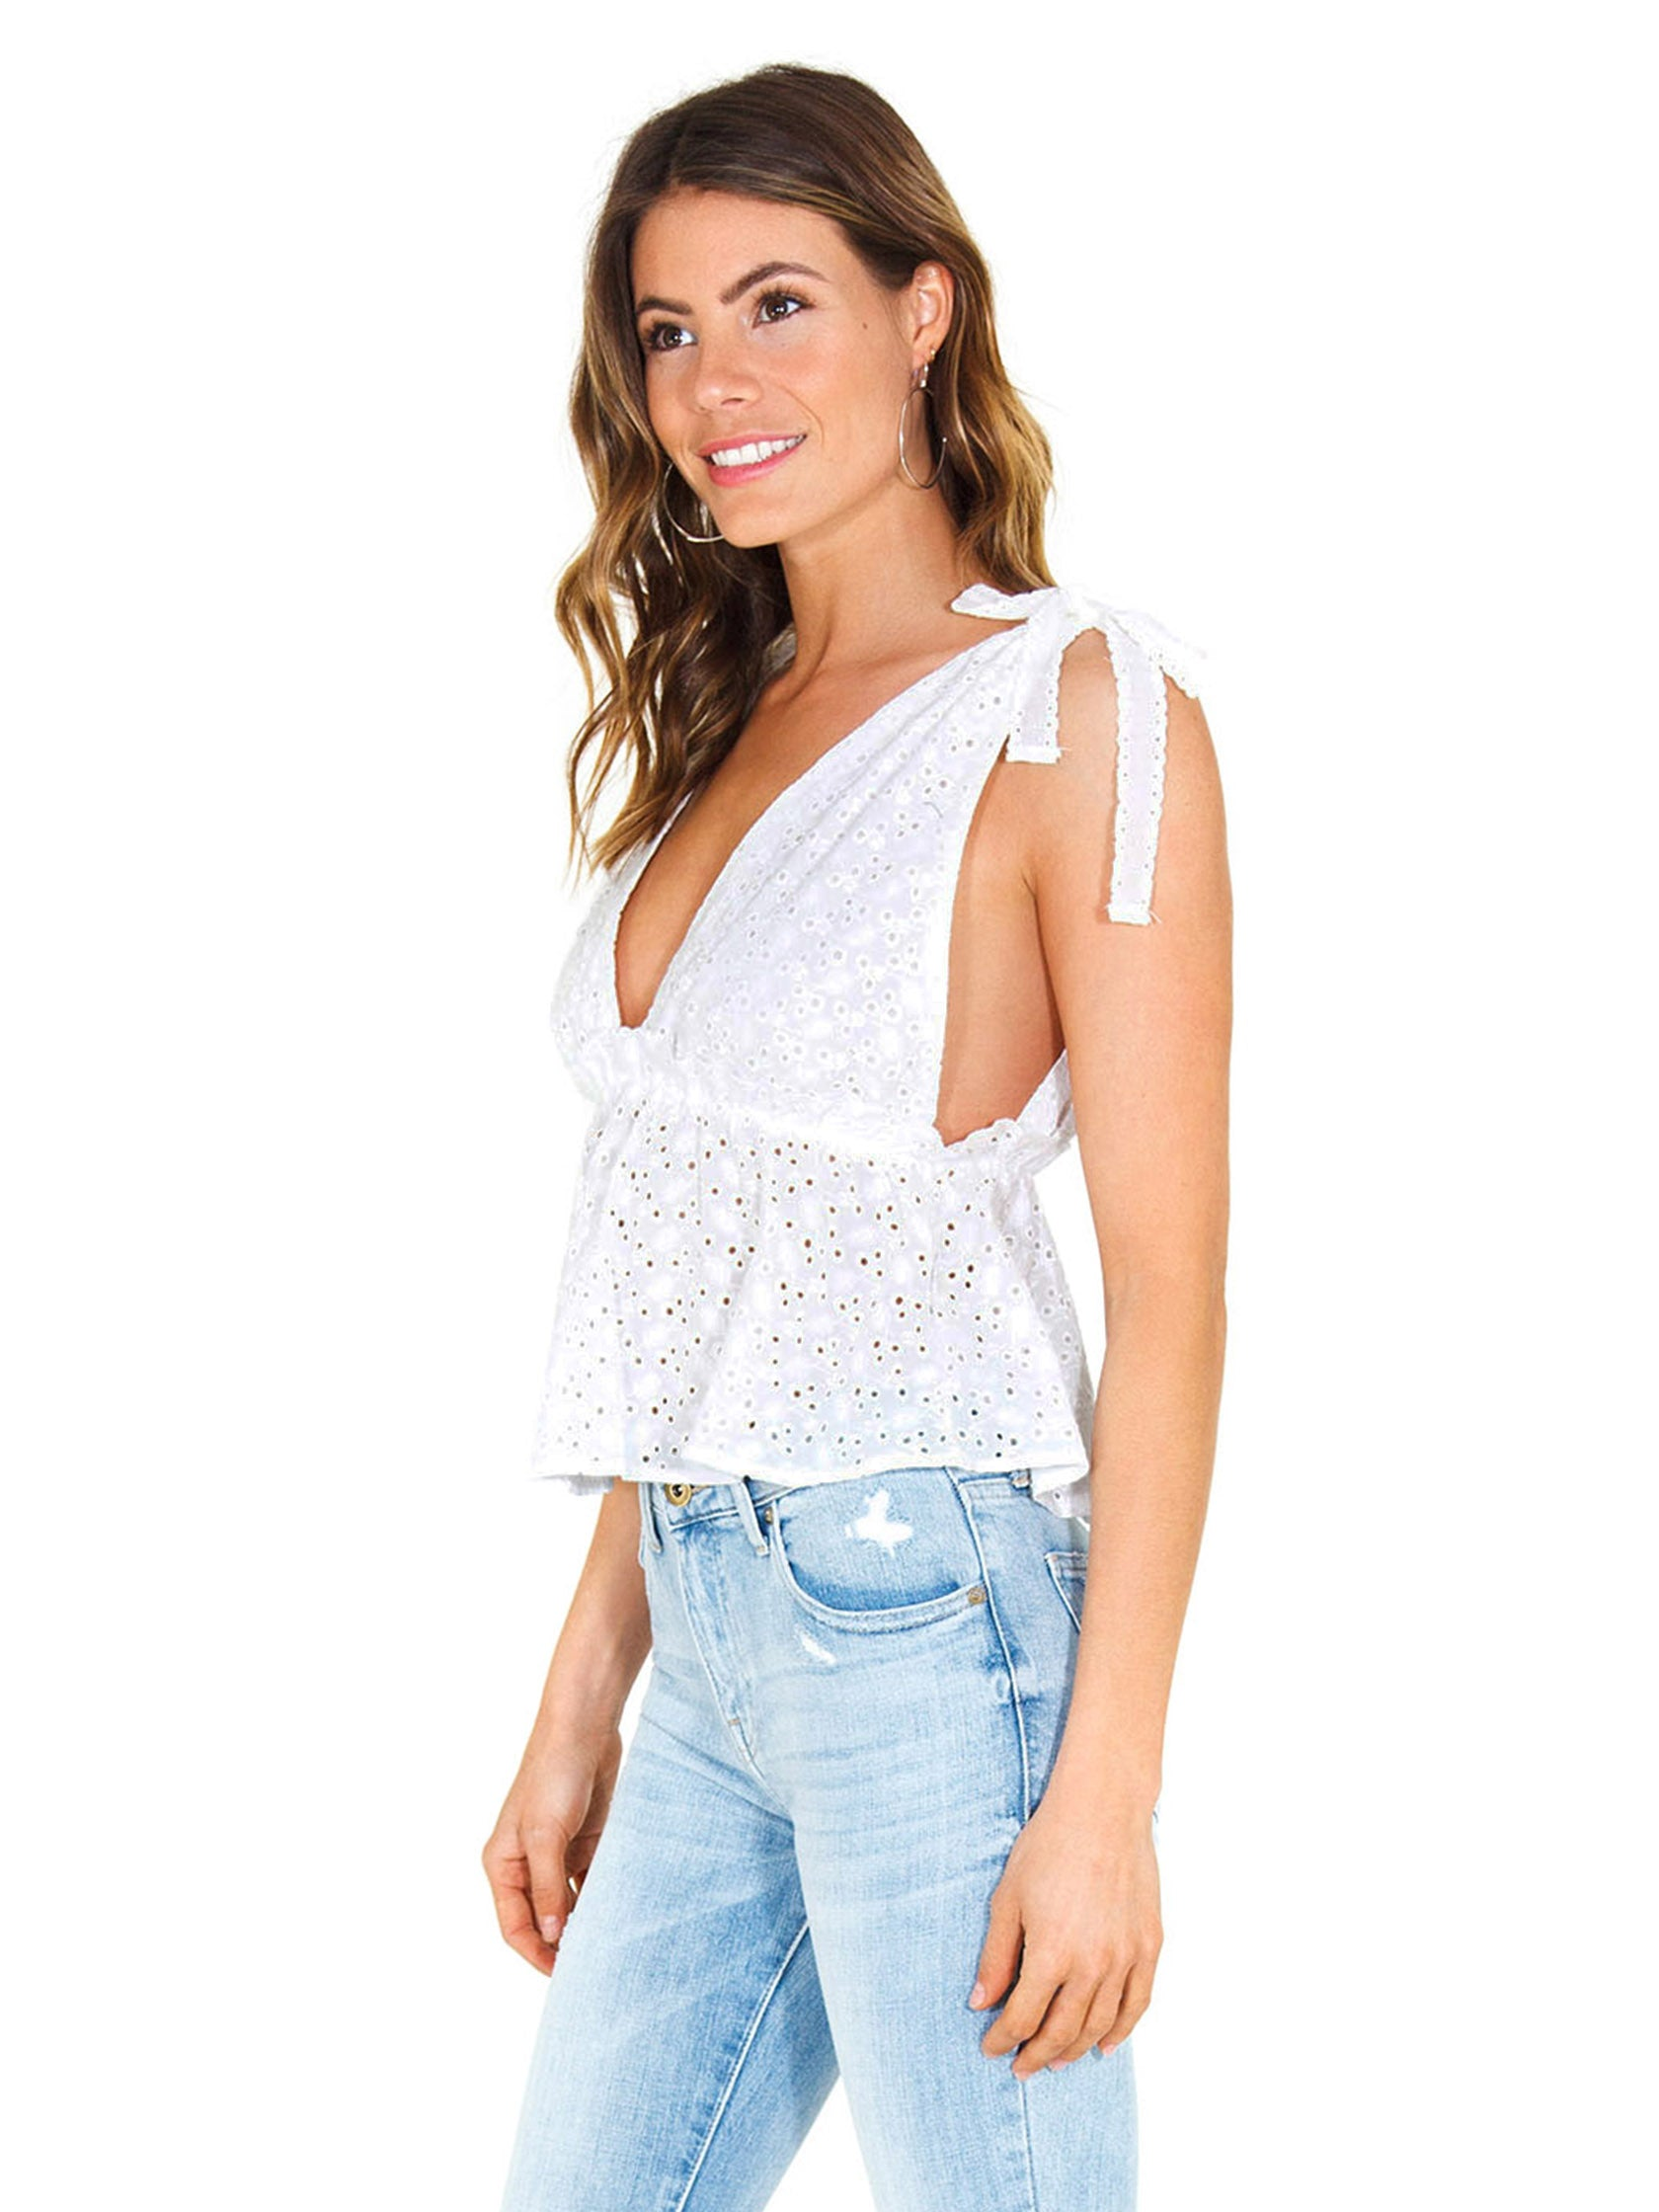 Women wearing a top rental from FashionPass called Plunging Eyelet Top